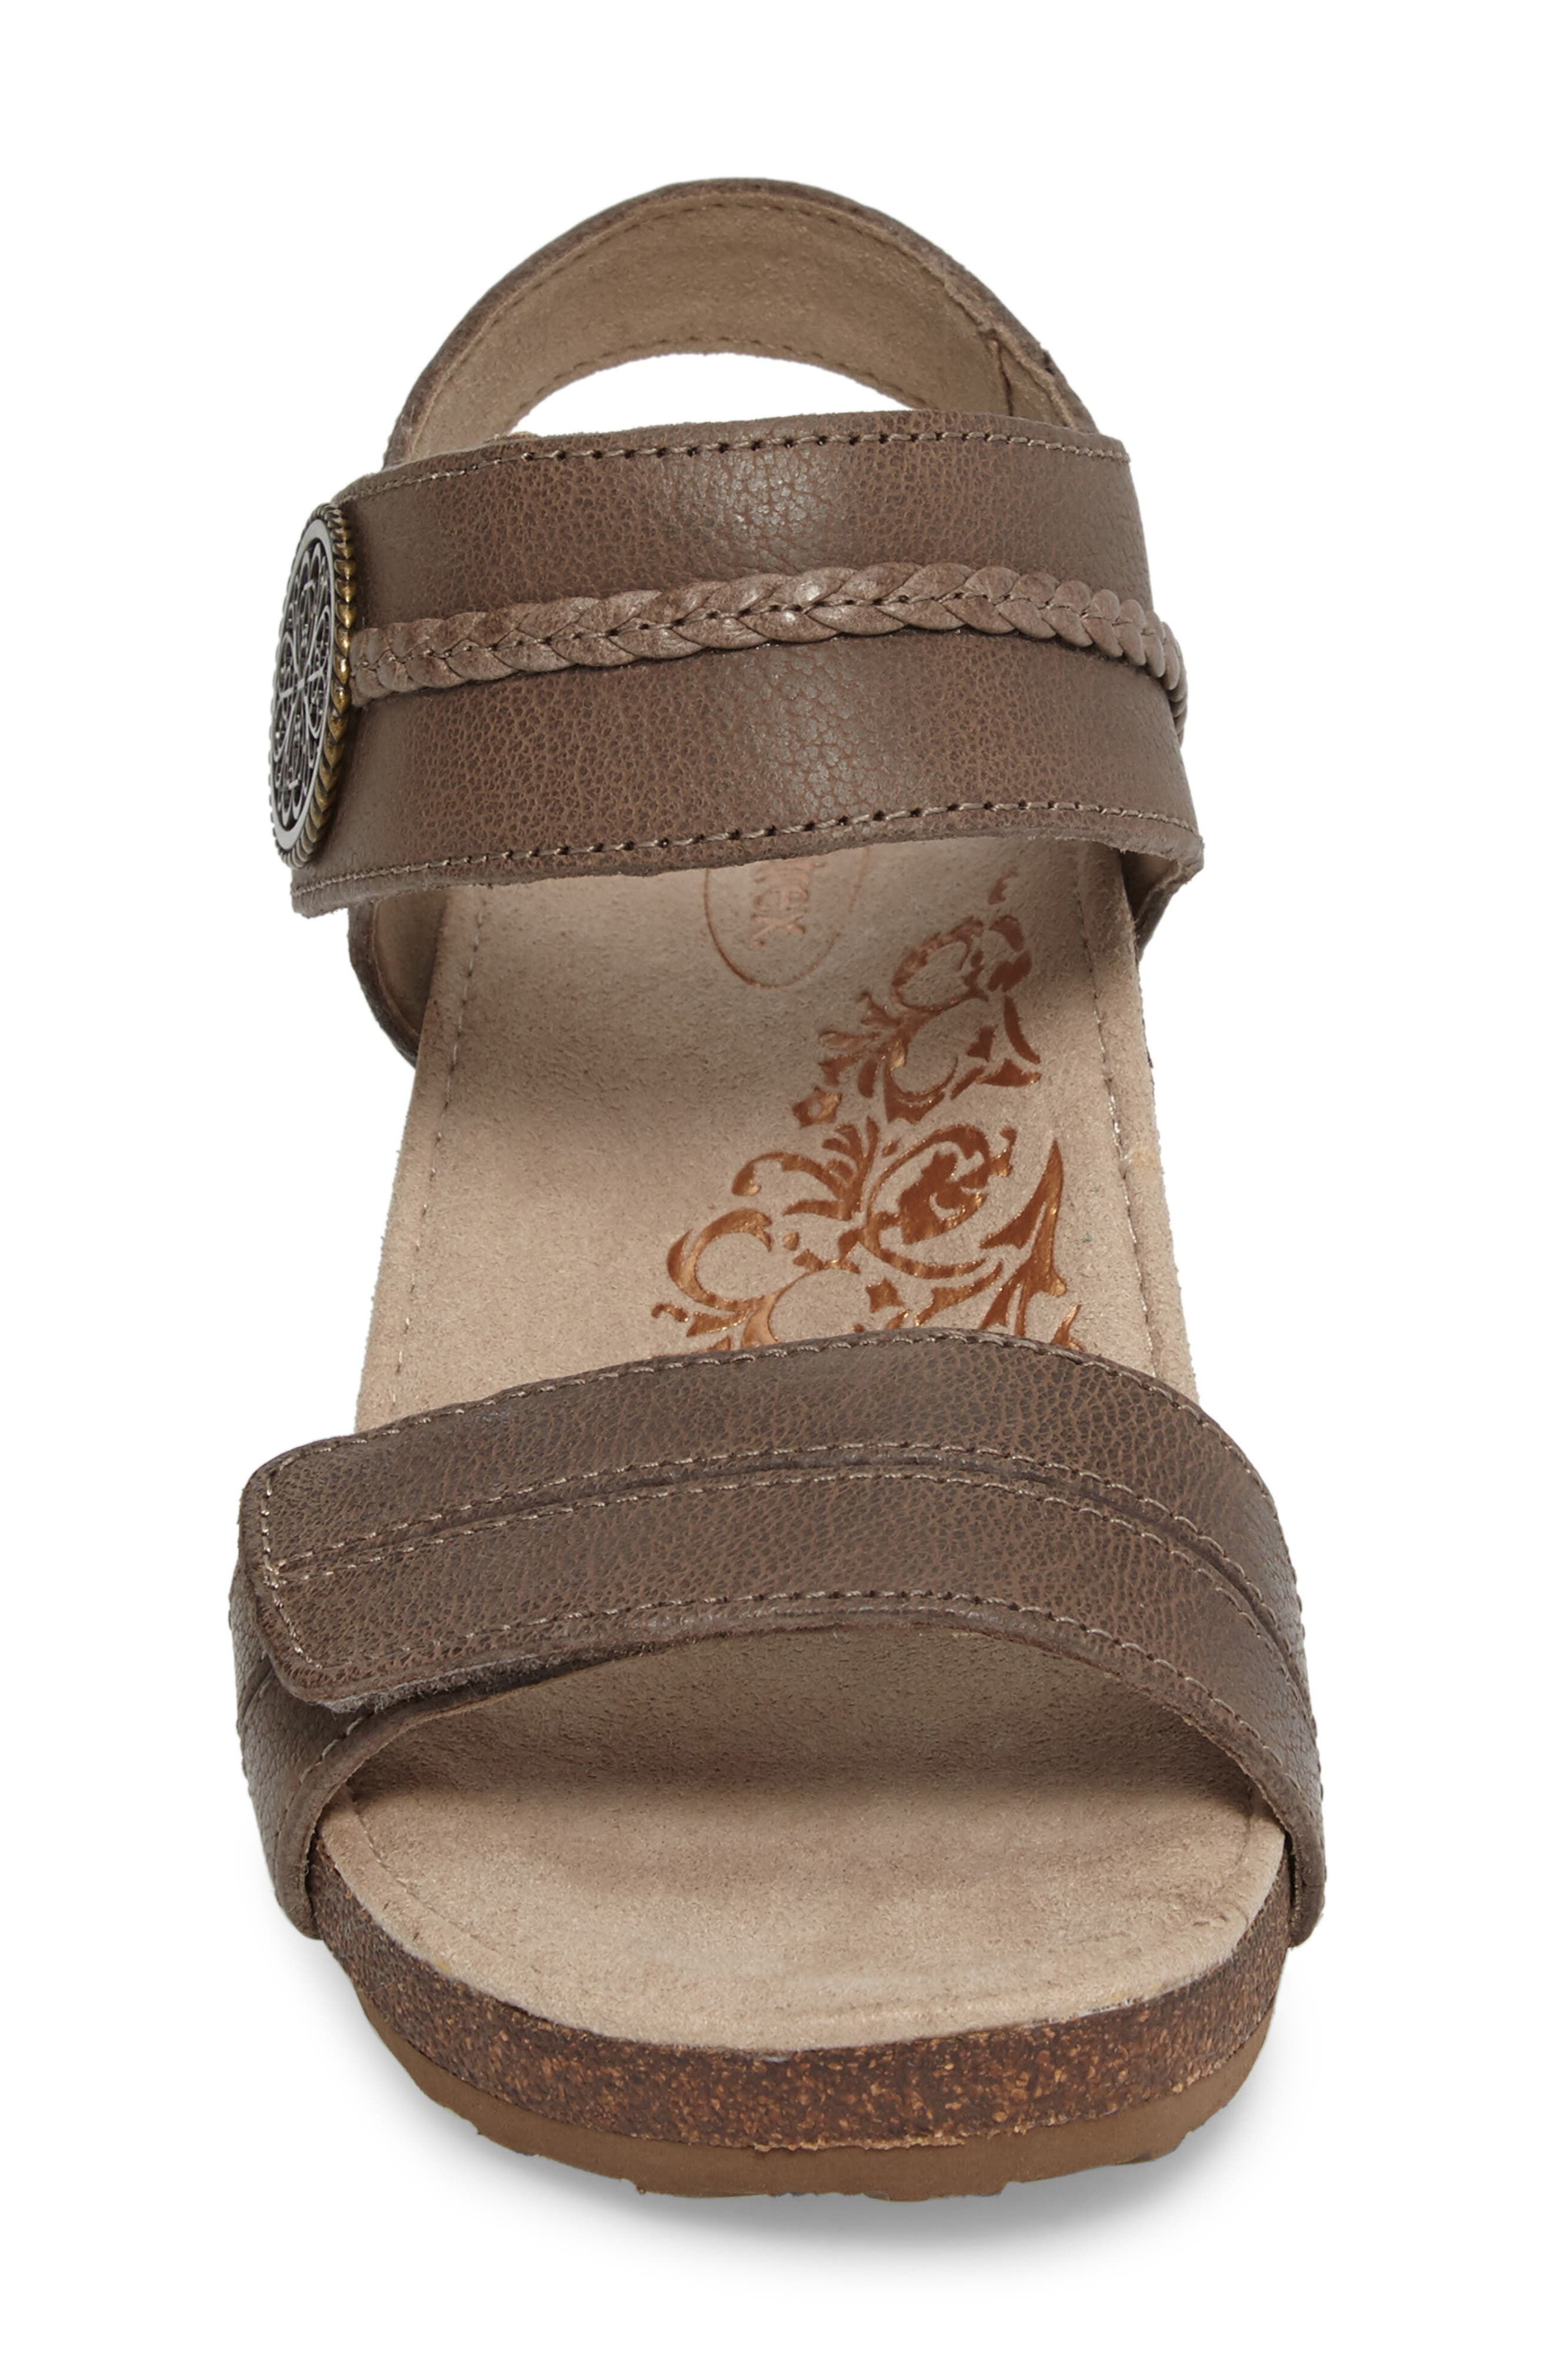 'Arielle' Leather Wedge Sandal,                             Alternate thumbnail 4, color,                             STONE LEATHER